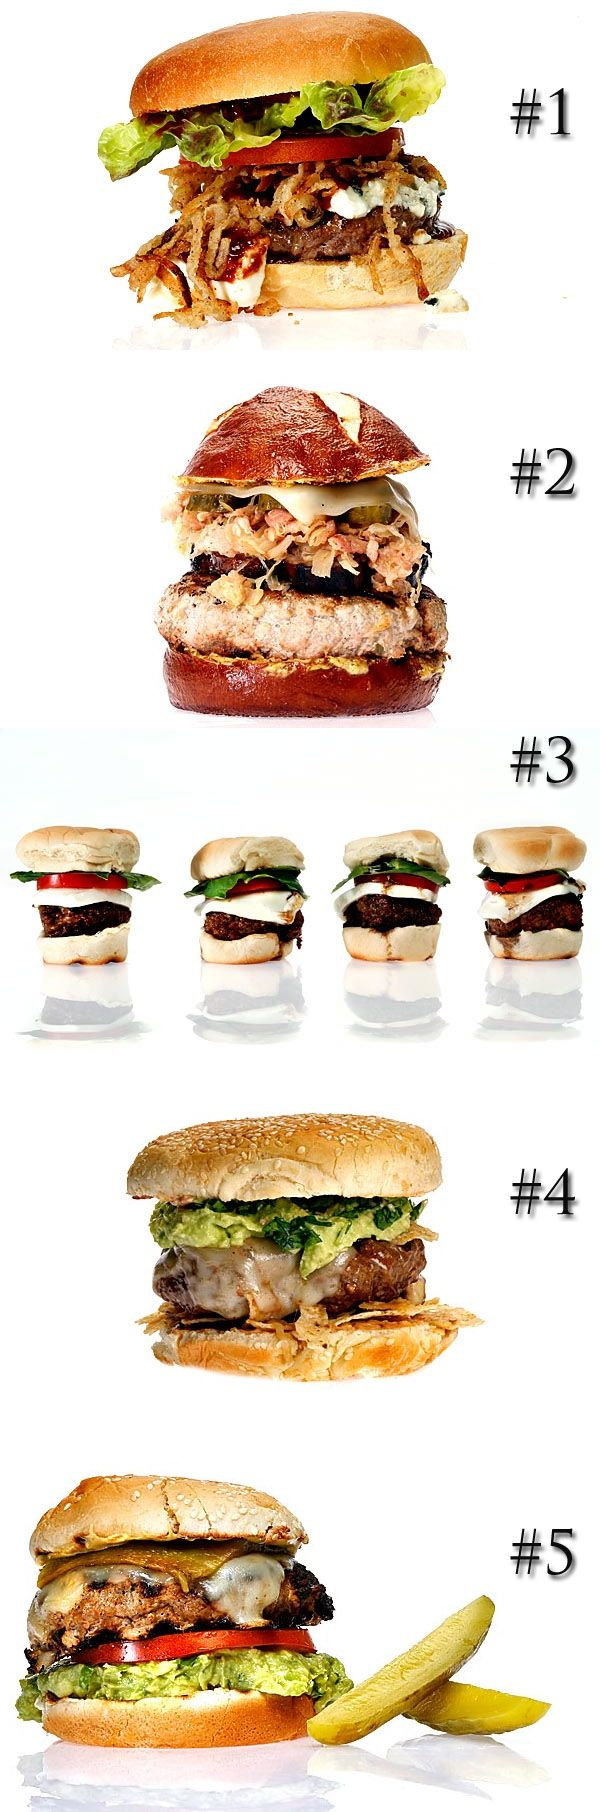 ... are in: The Top 5 burgers in our first ever Battle of the Burgers